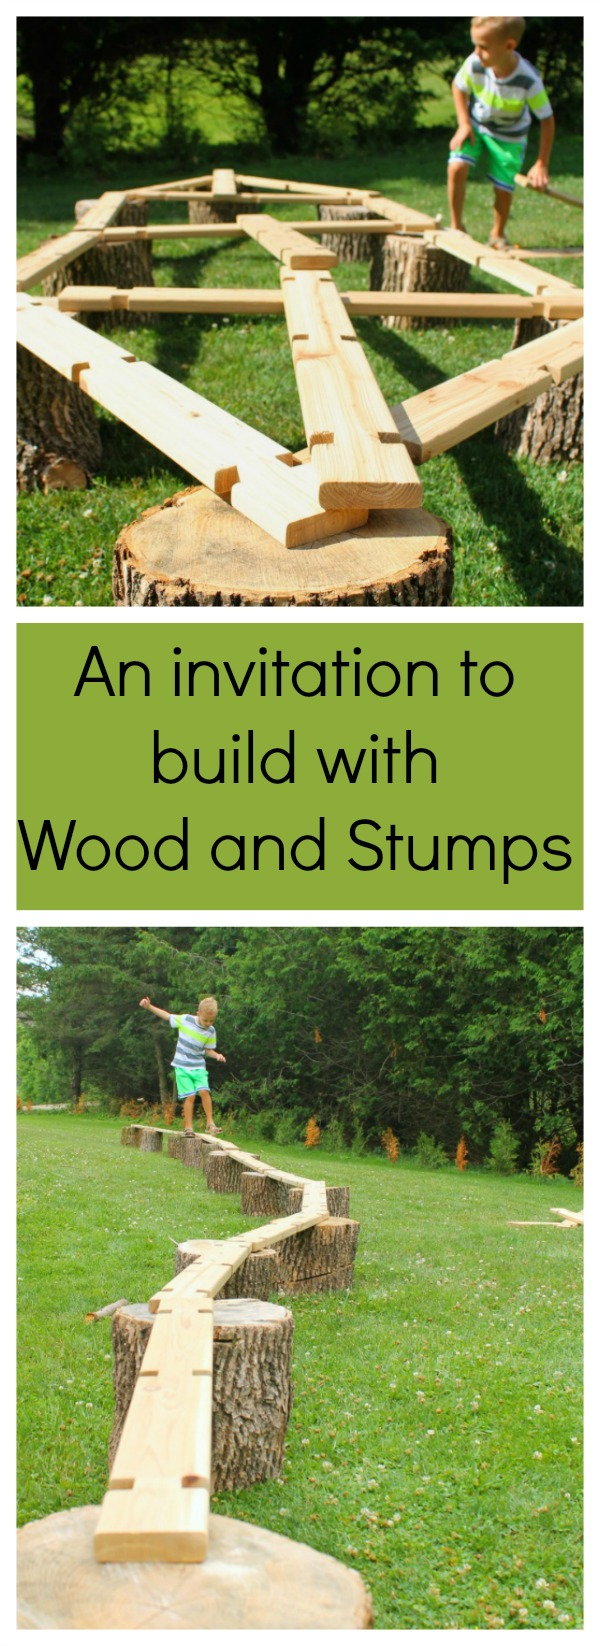 A simple invitation to build big and create with wood. Balance beams, boats - you name it. Great for heavy work and gross motor development, plus just plain old outdoor fun!